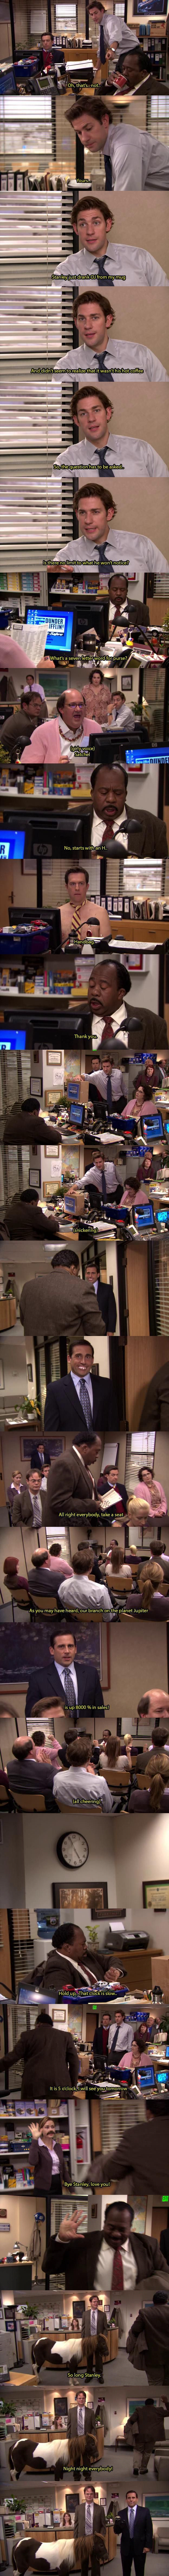 One of the best moments from The Office.